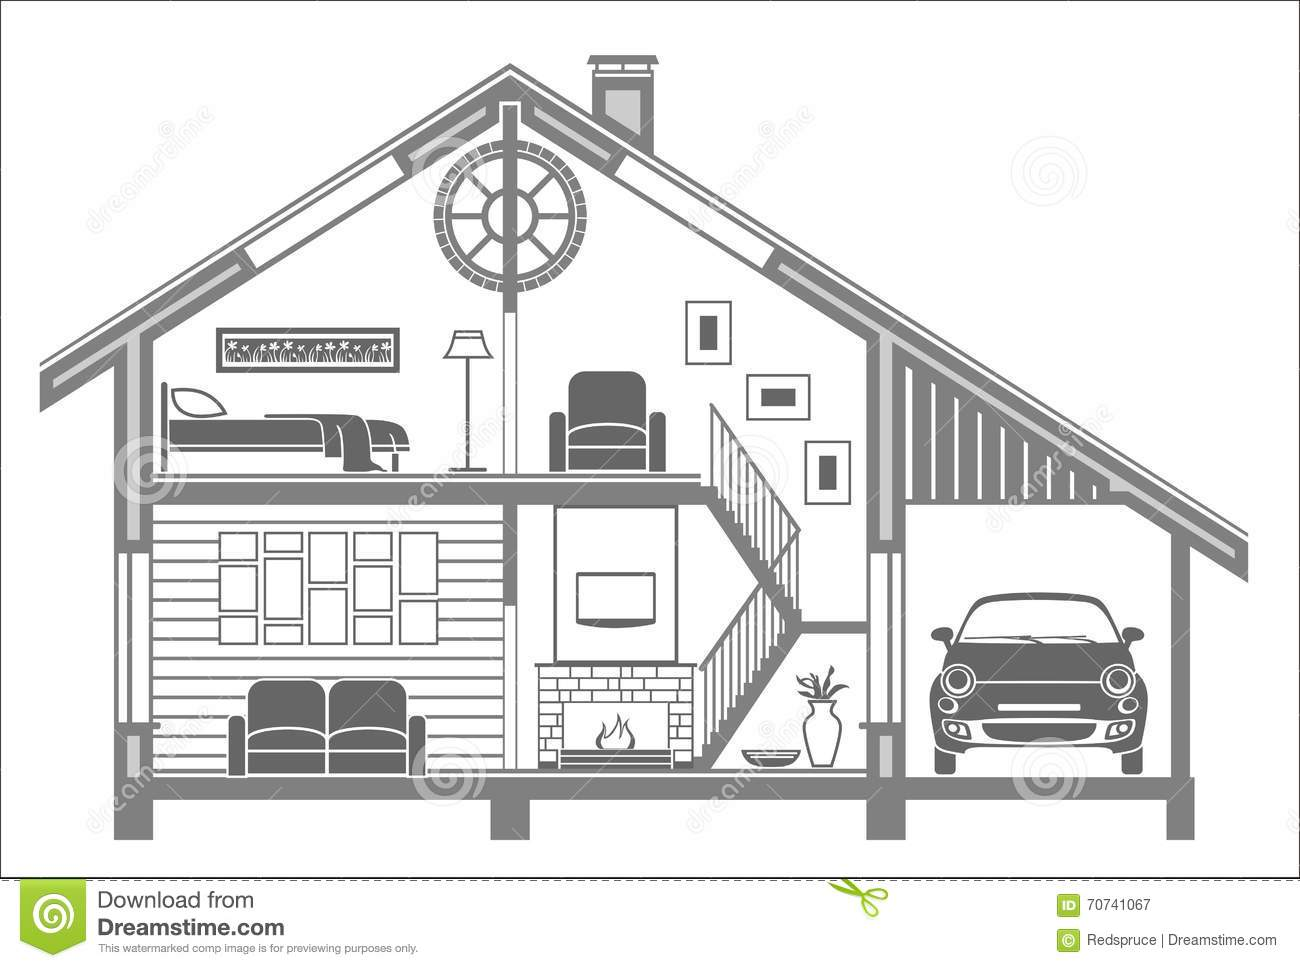 House interior silhouette vector illustration for Interior house design clipart